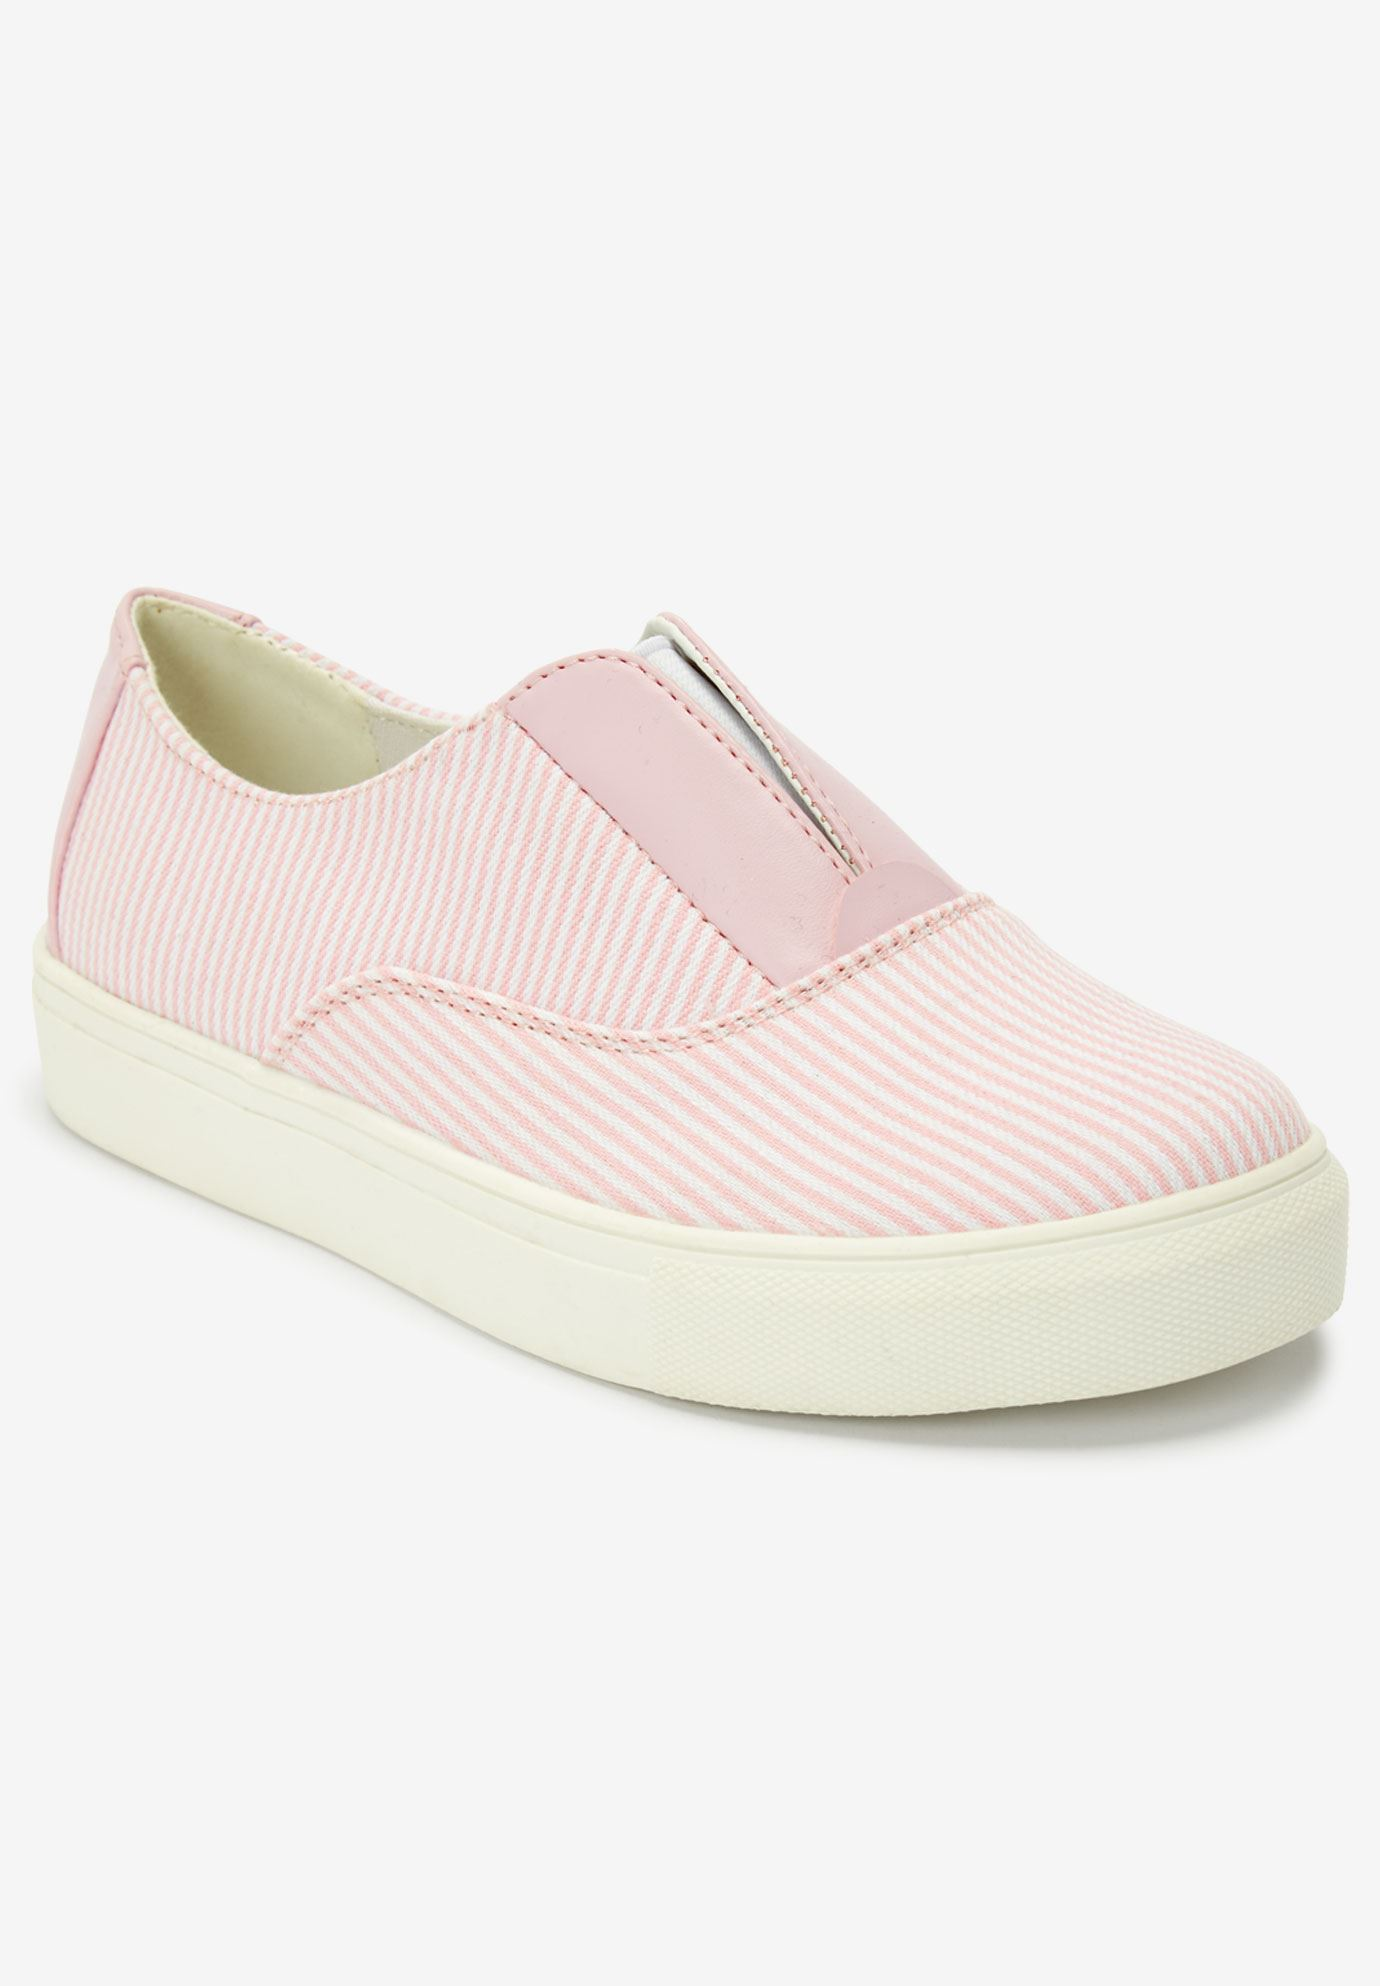 outlet comfortable free shipping comfortable Maisy Sneaker CV Sport by Comfortview® LYyOfY